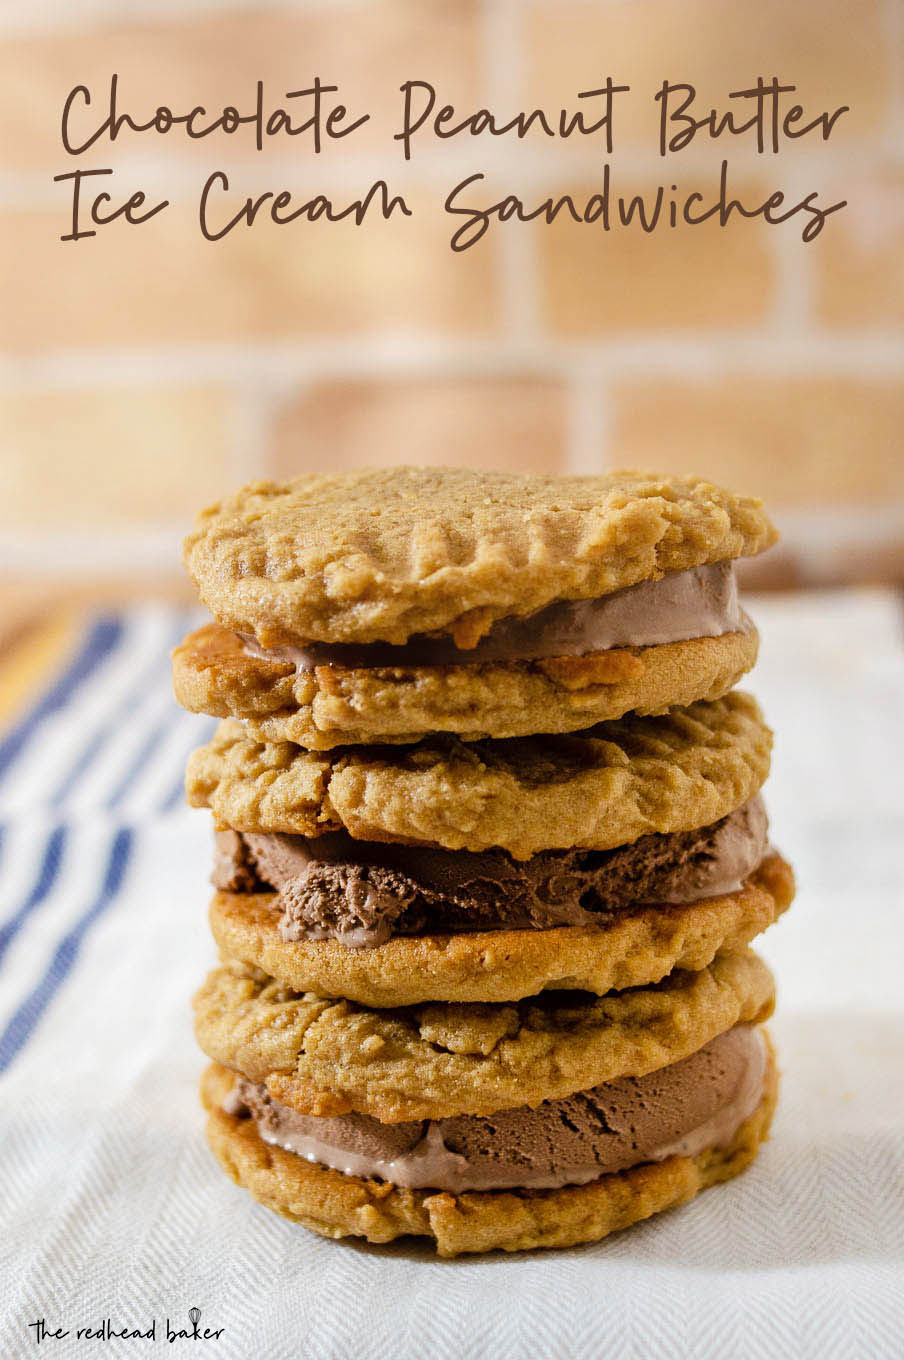 A stack of three chocolate peanut butter ice cream sandwiches